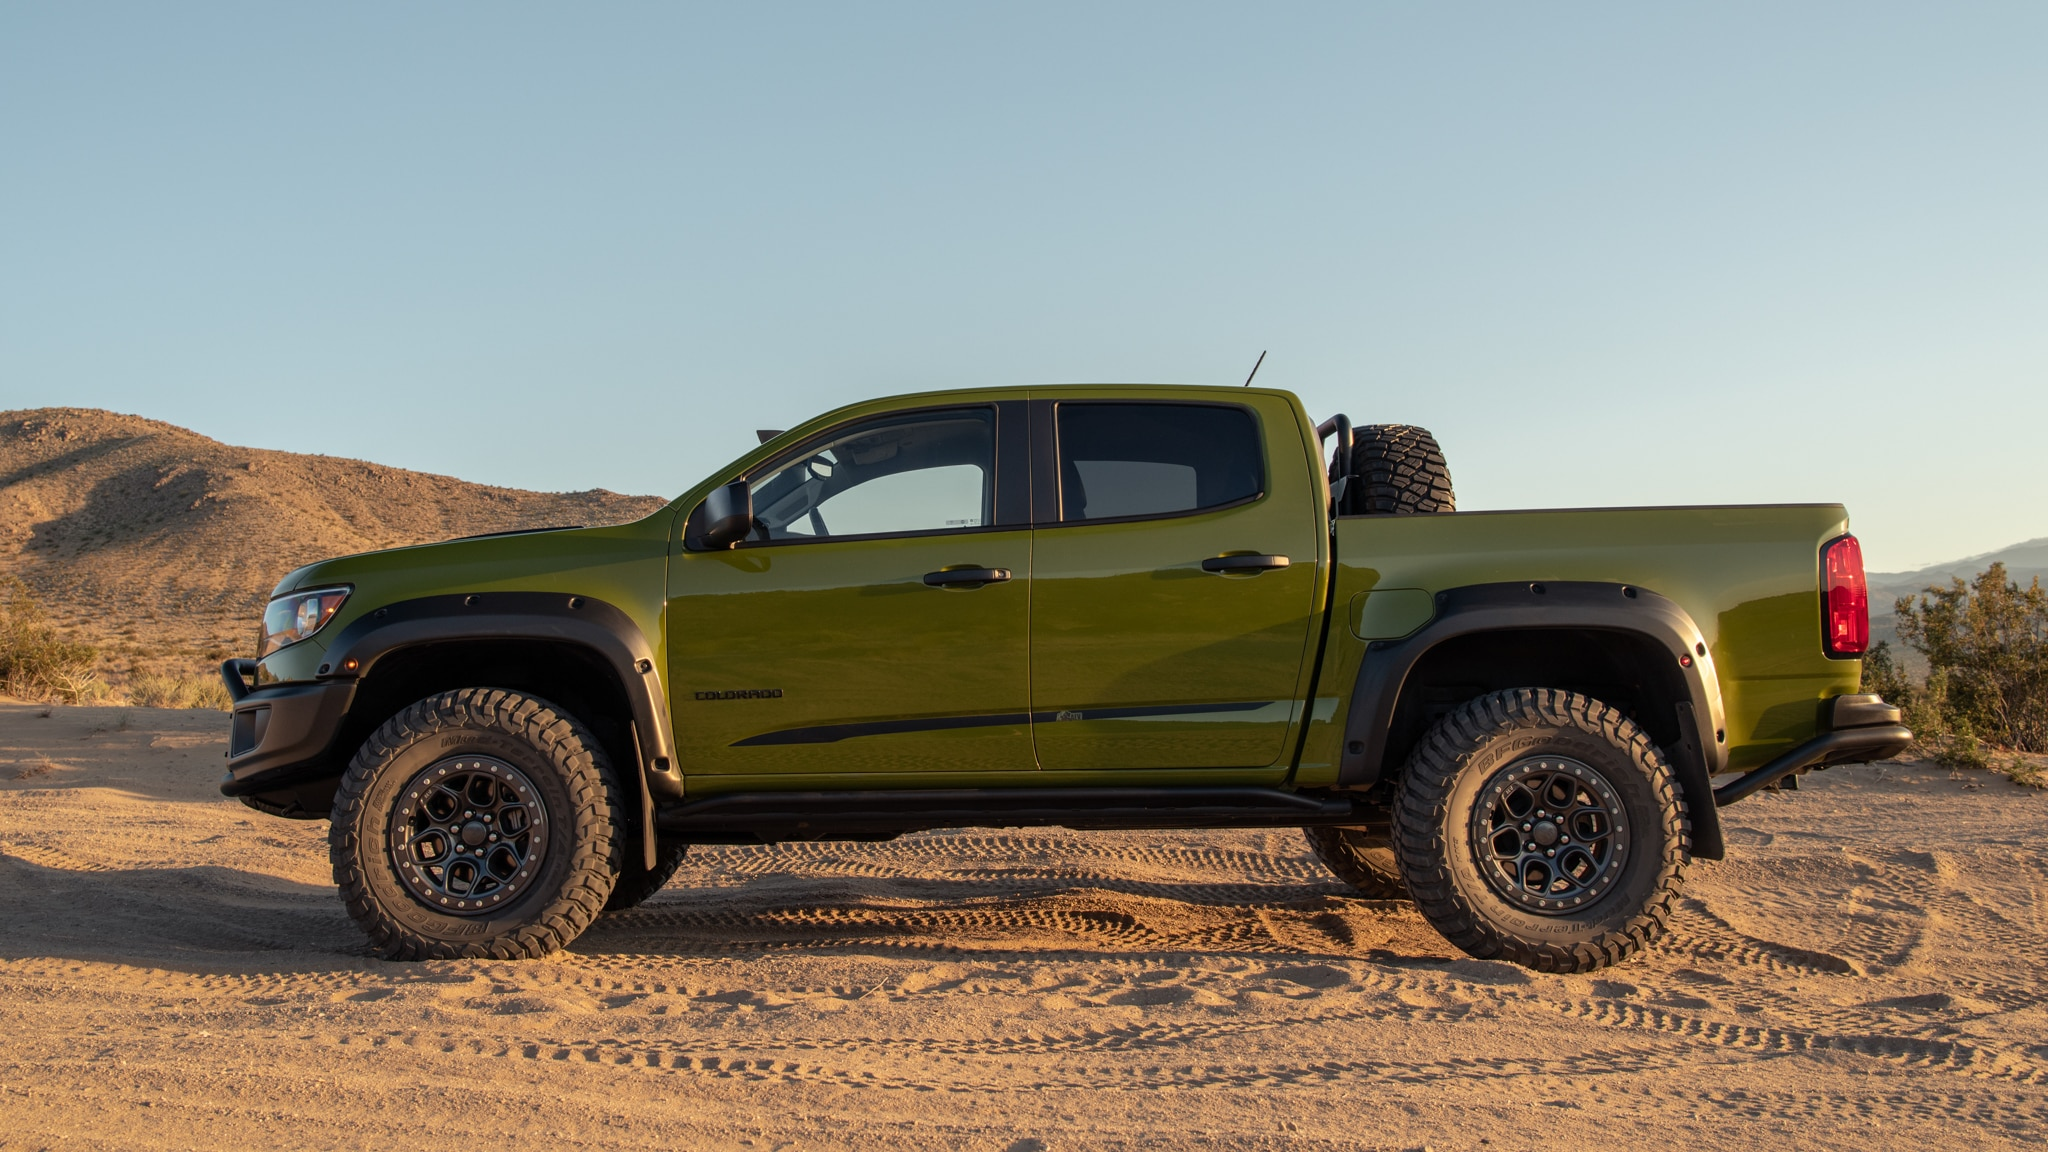 Driven The Ridiculous Awesomely Loaded 2020 Chevrolet Aev Colorado Zr2 Bison